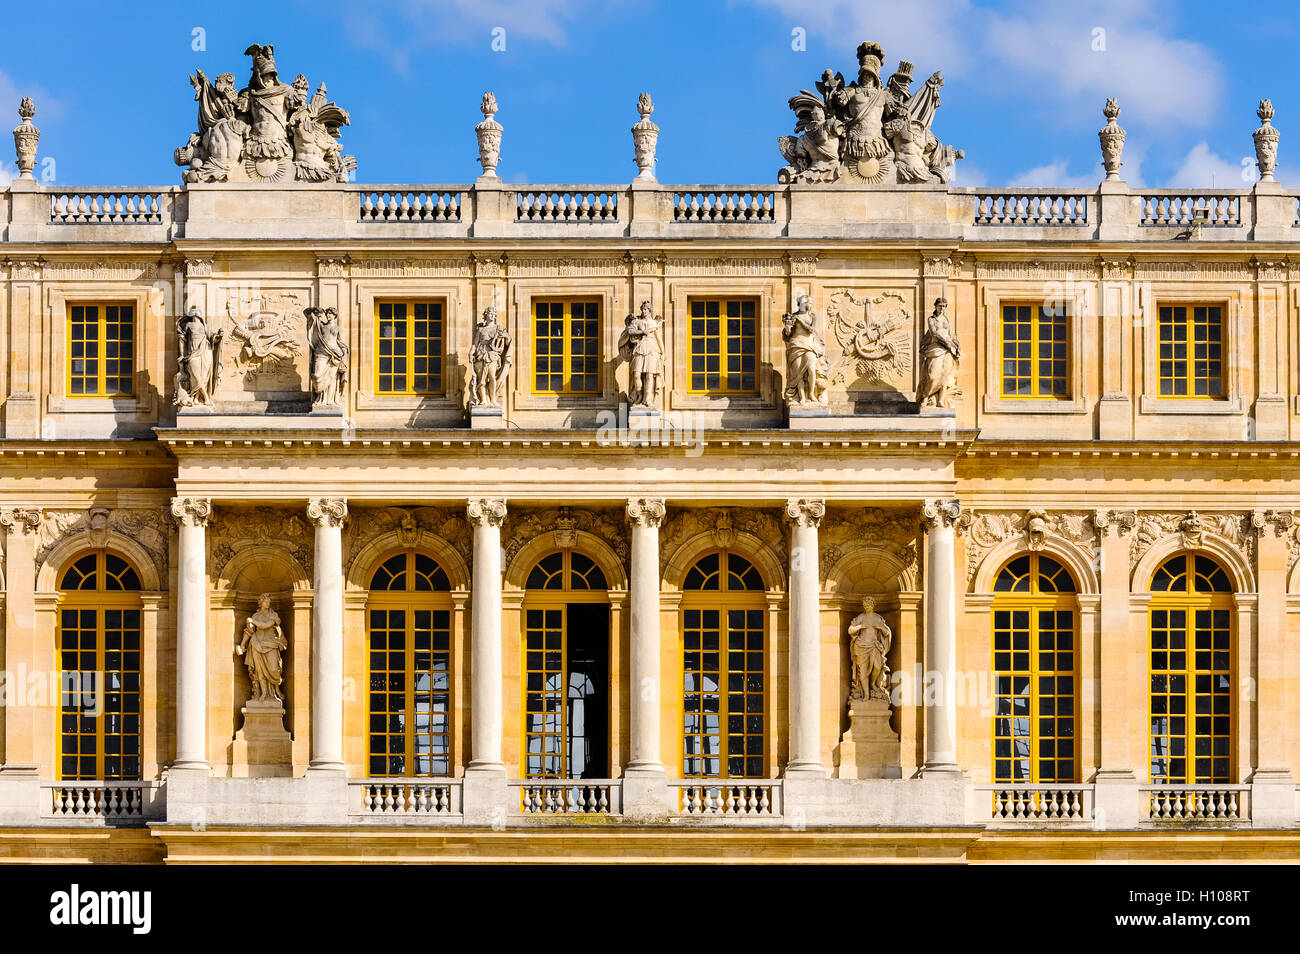 The Palace of Versailles, or simply Versailles, is a royal château close to Paris, France. - Stock Image